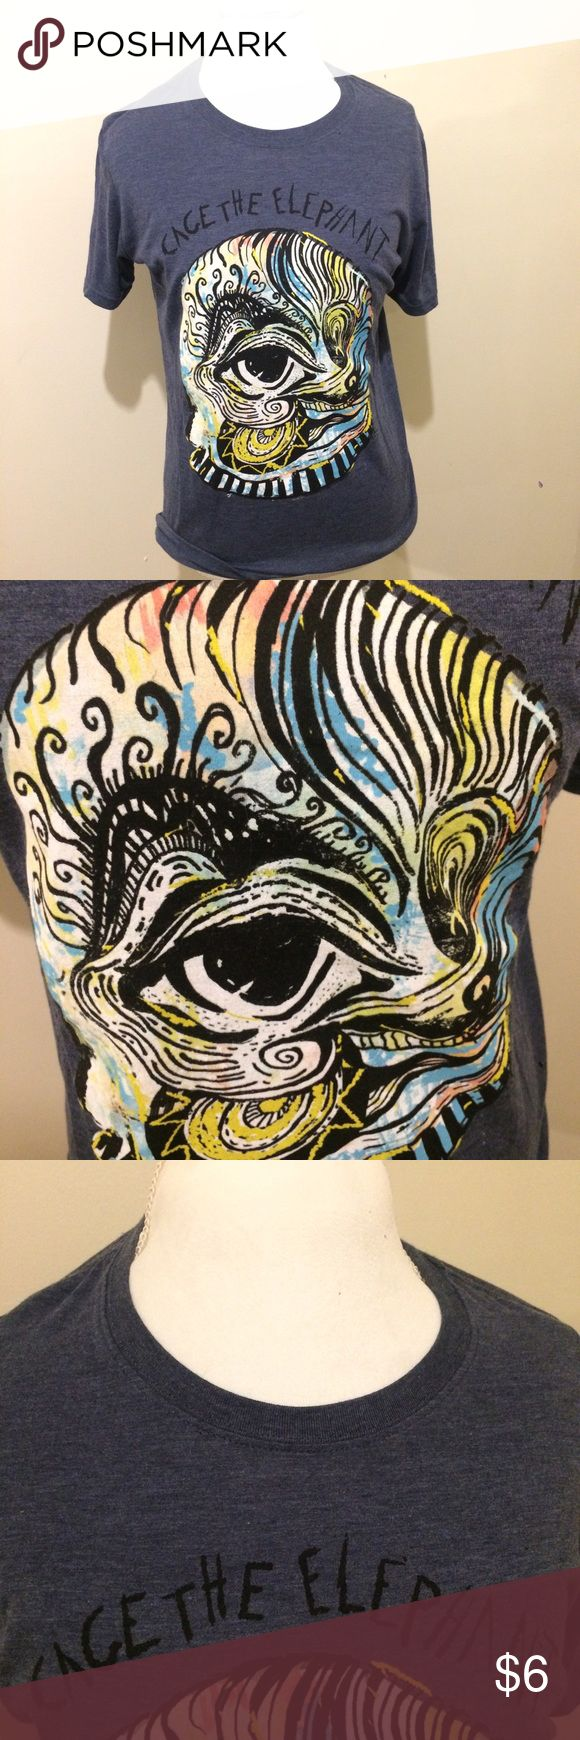 Cage the elephant medium graphic t shirt No flaws!  Fast shipping!  No trades please!  Save 10% on all bundles!  Make me an offer!  Shirts Tees - Short Sleeve